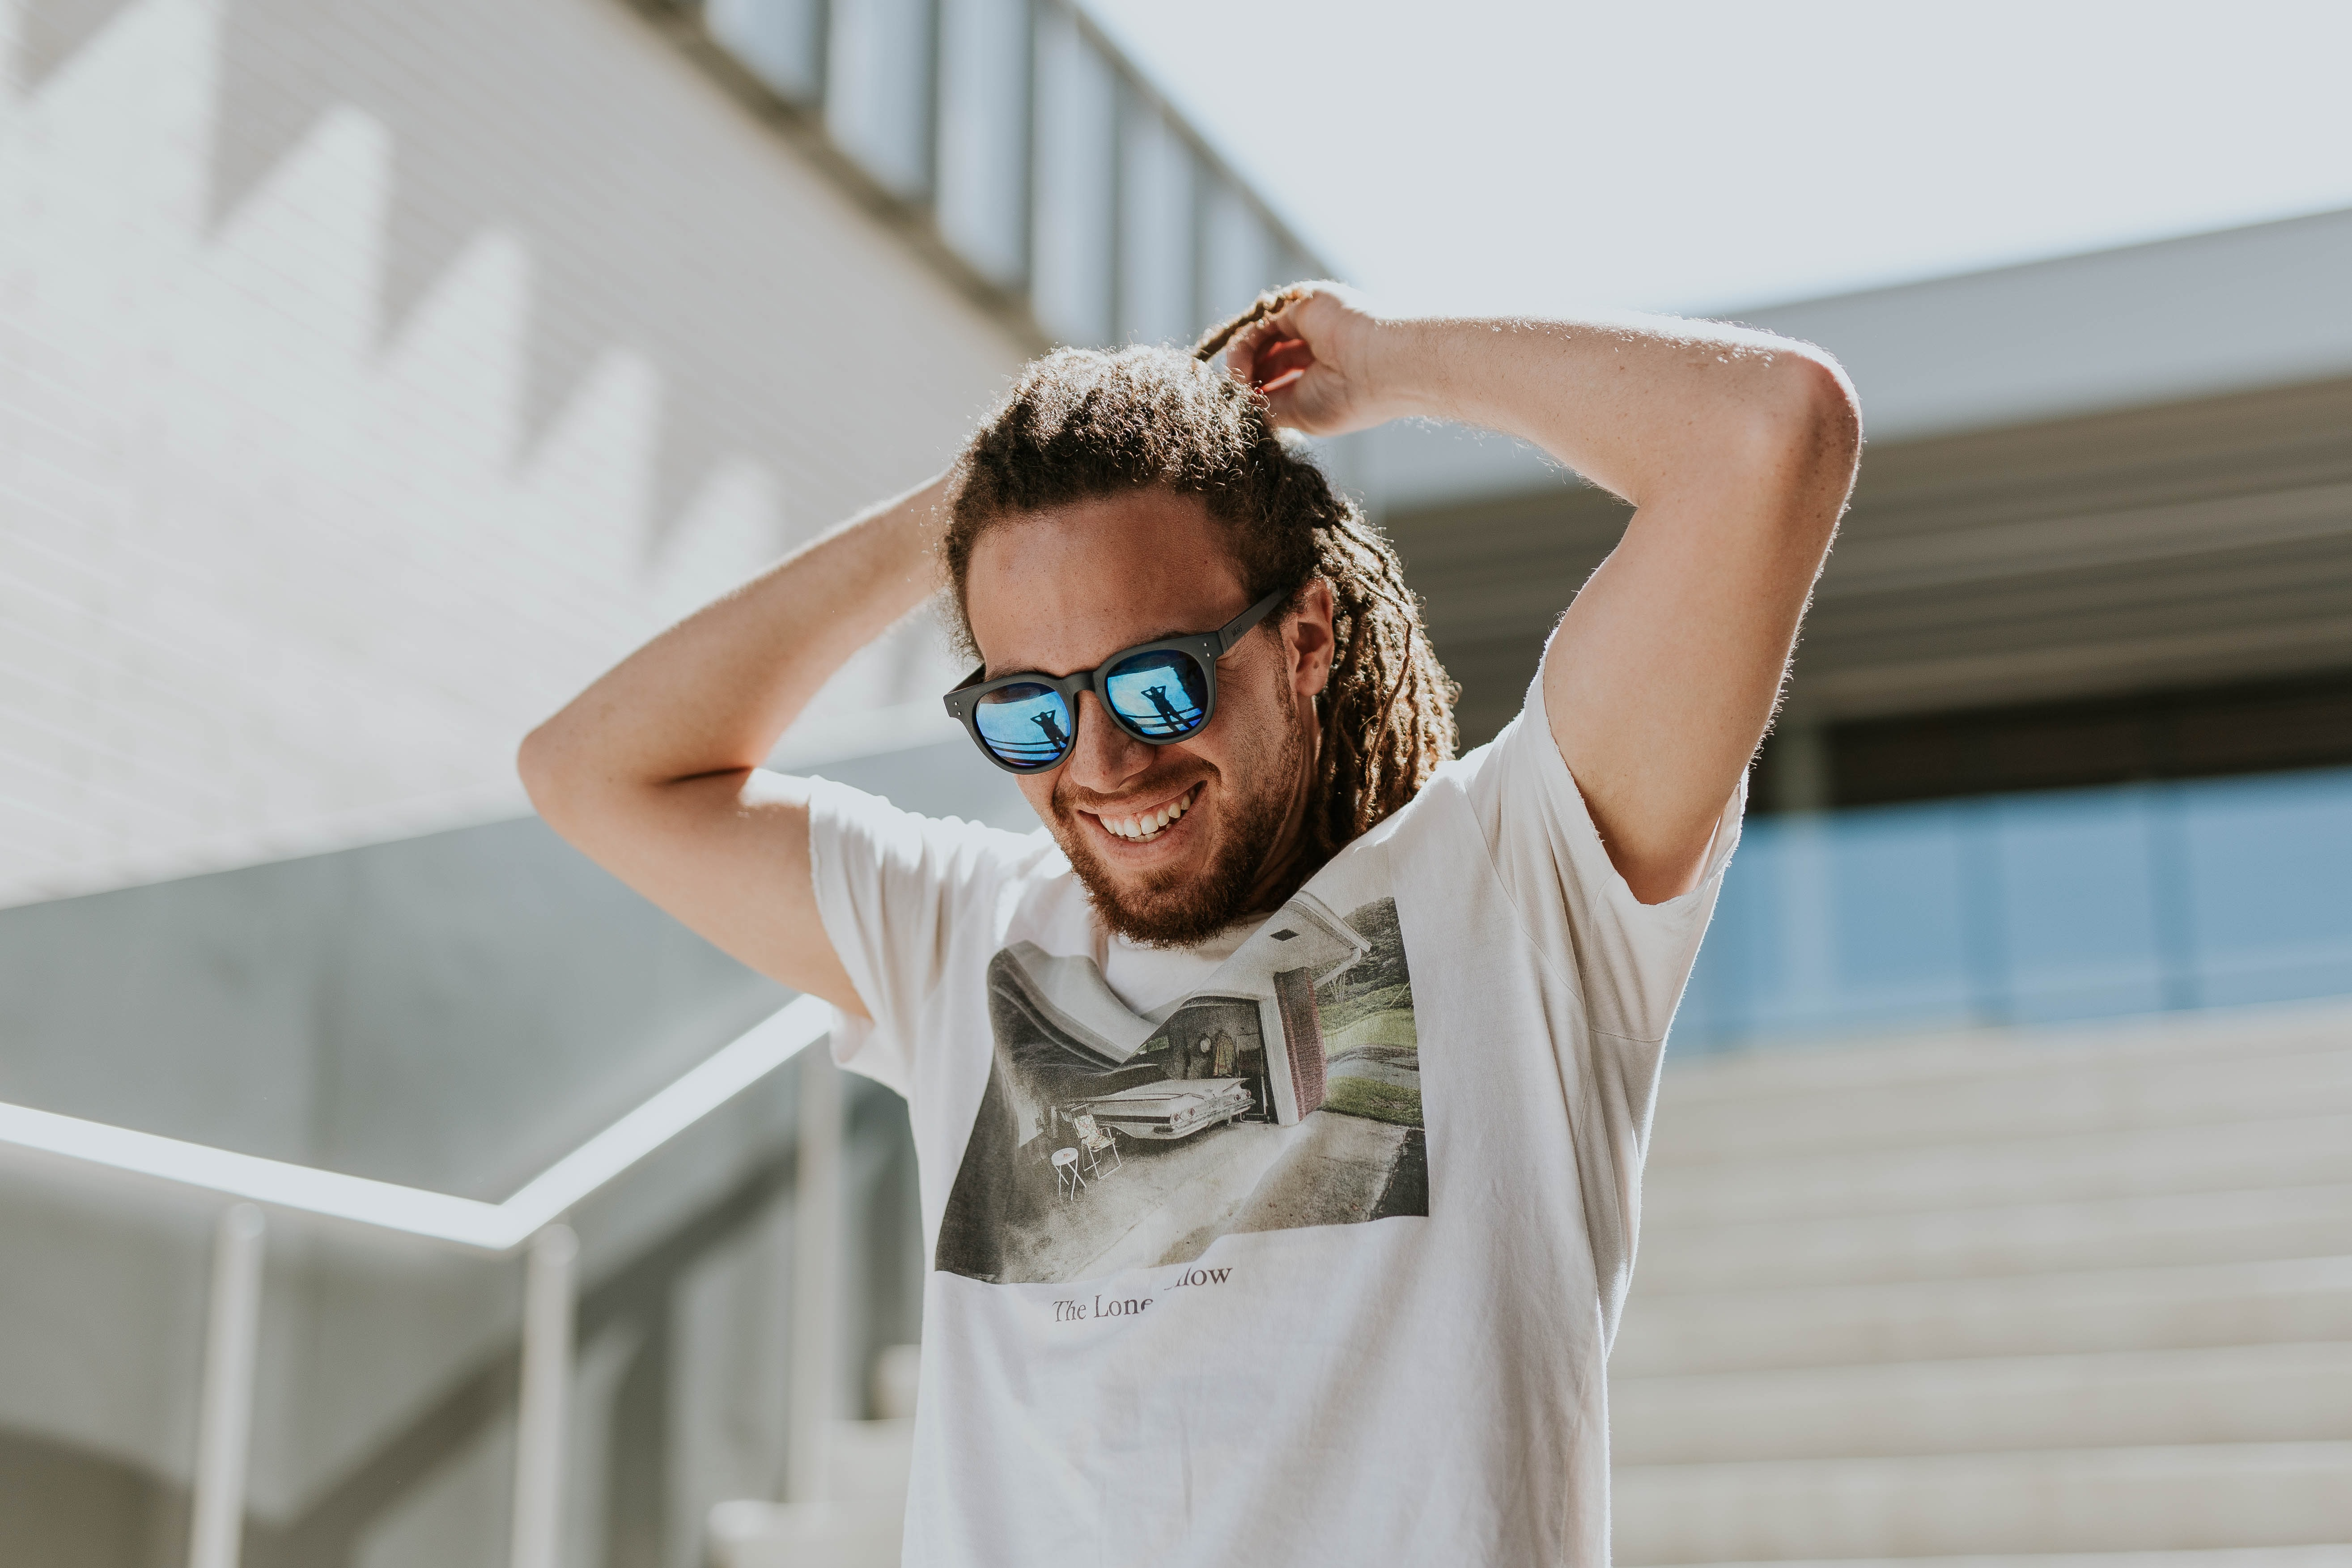 A smiling man wearing sunglasses and dreadlocks holds his hands atop his head on the stairs